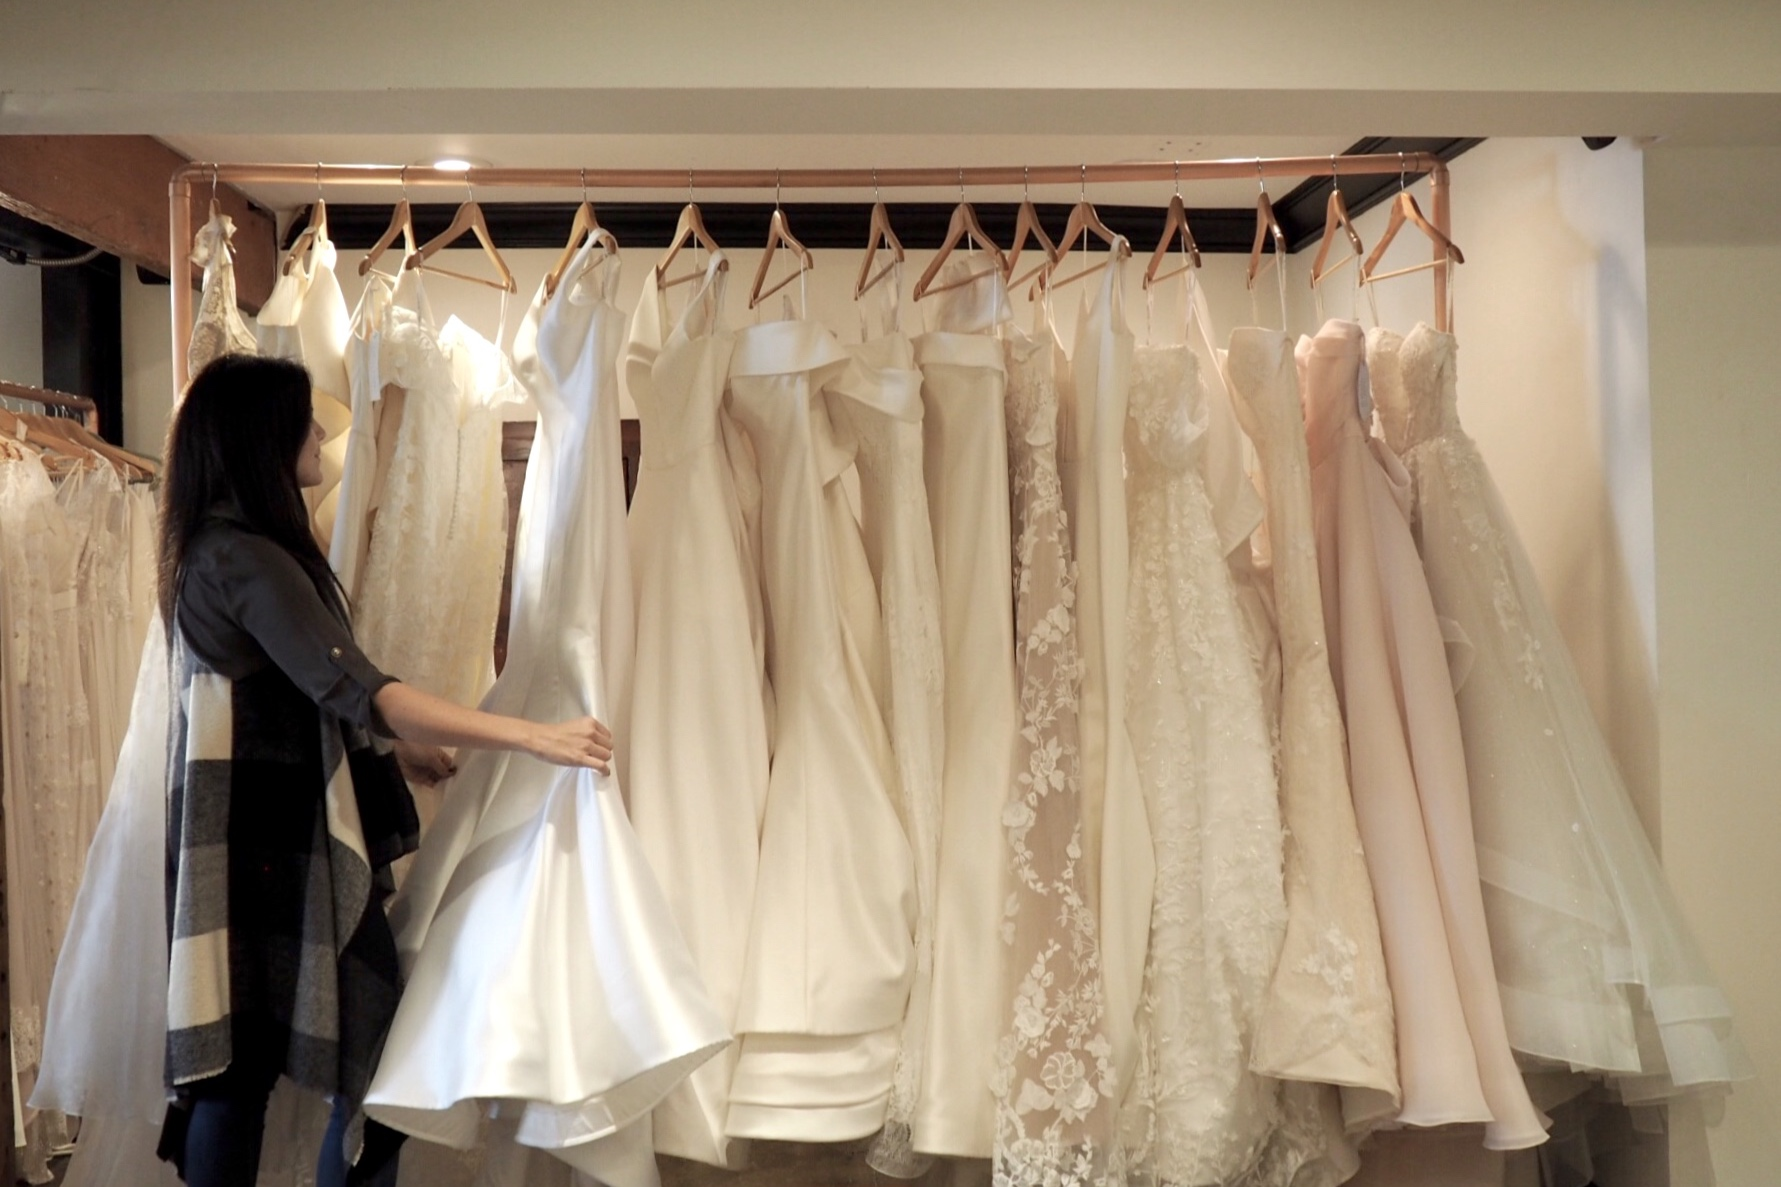 Our interview with En Blanc Bridal